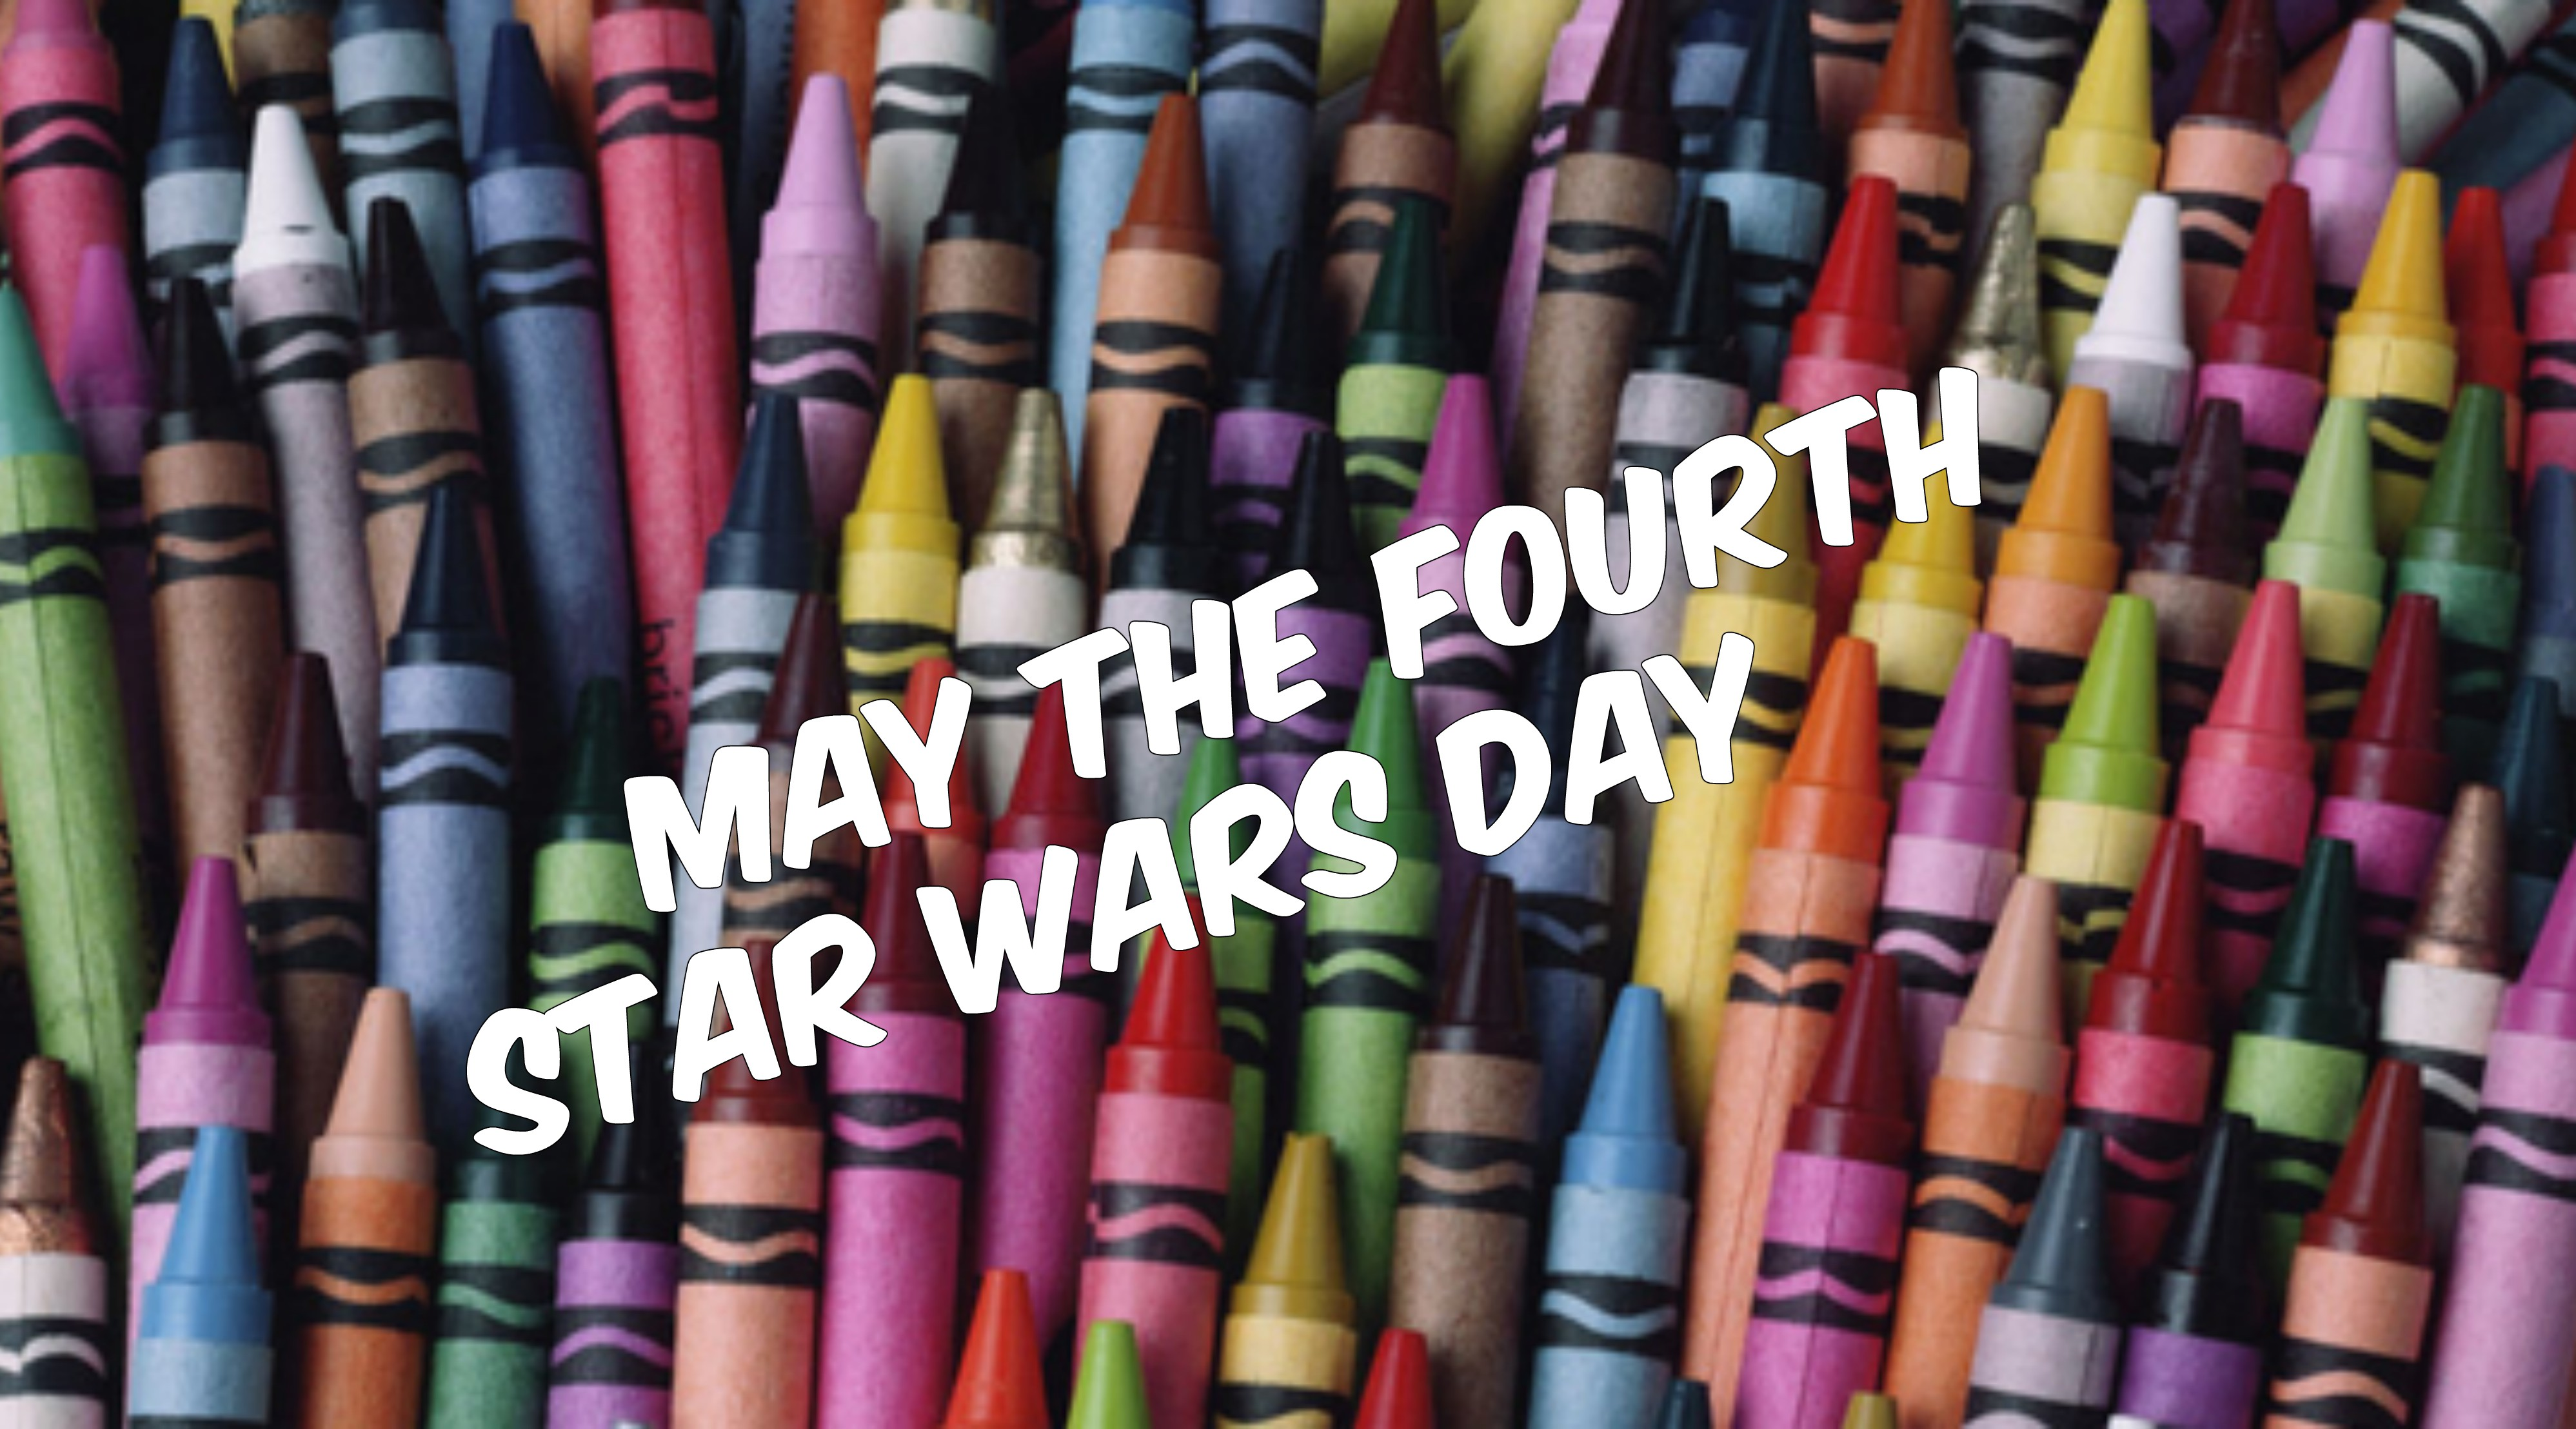 Coloring Pages Daily Activities : Fashionably nerdy family star wars day may the fourth coloring